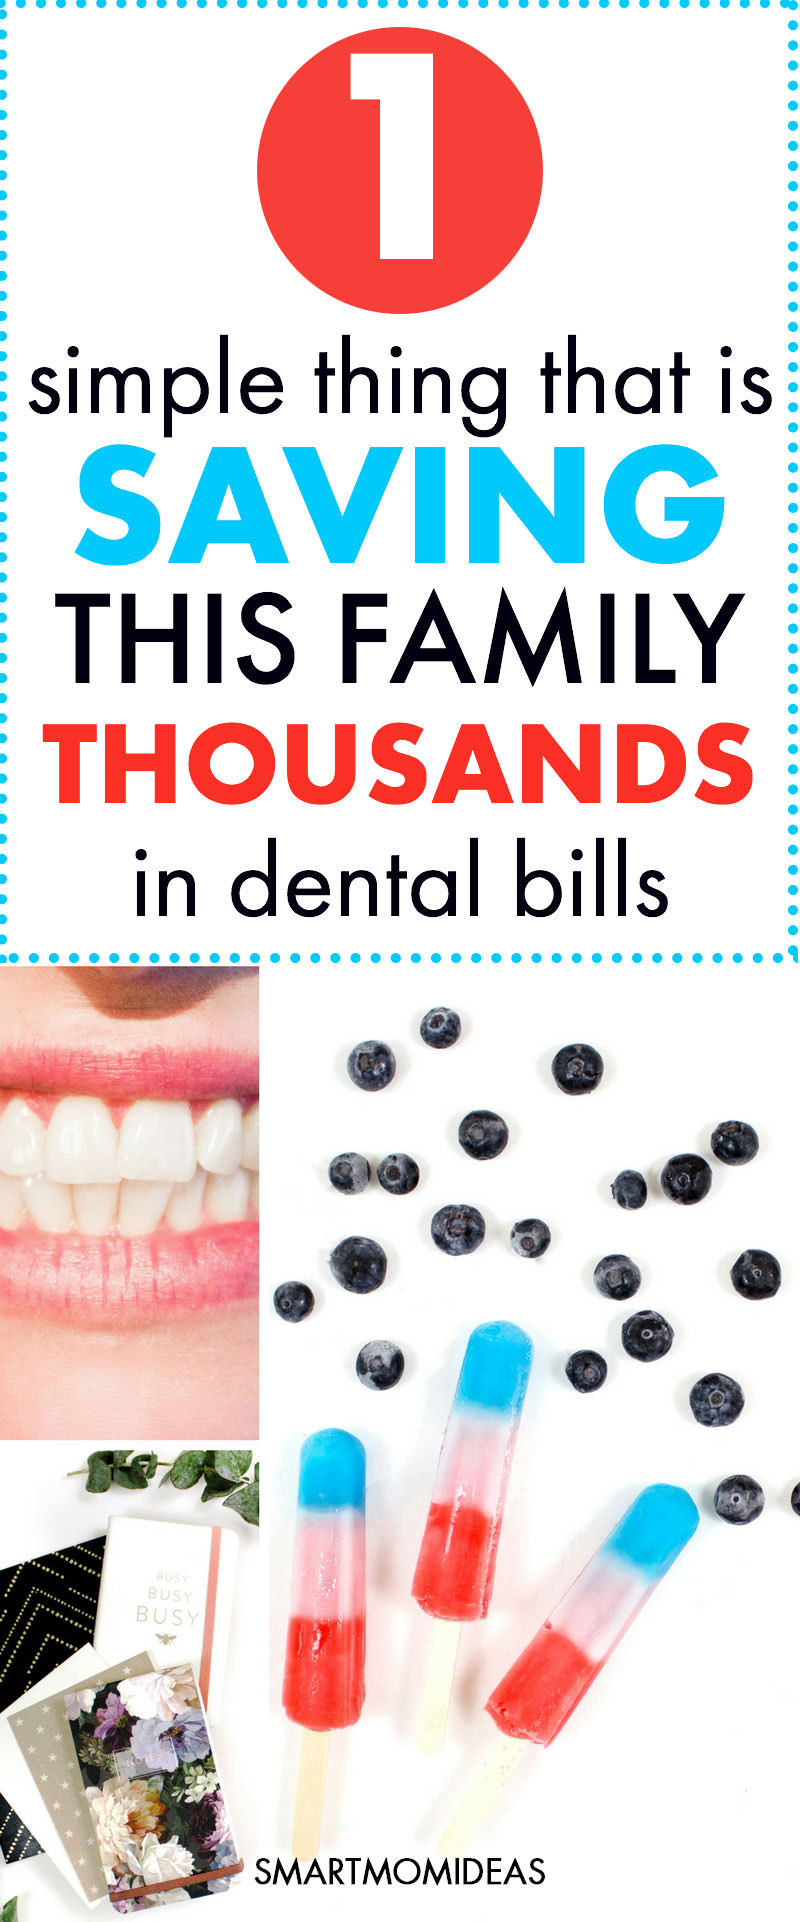 1 Simple Thing That is Saving This Family Thousands in Dental Bills